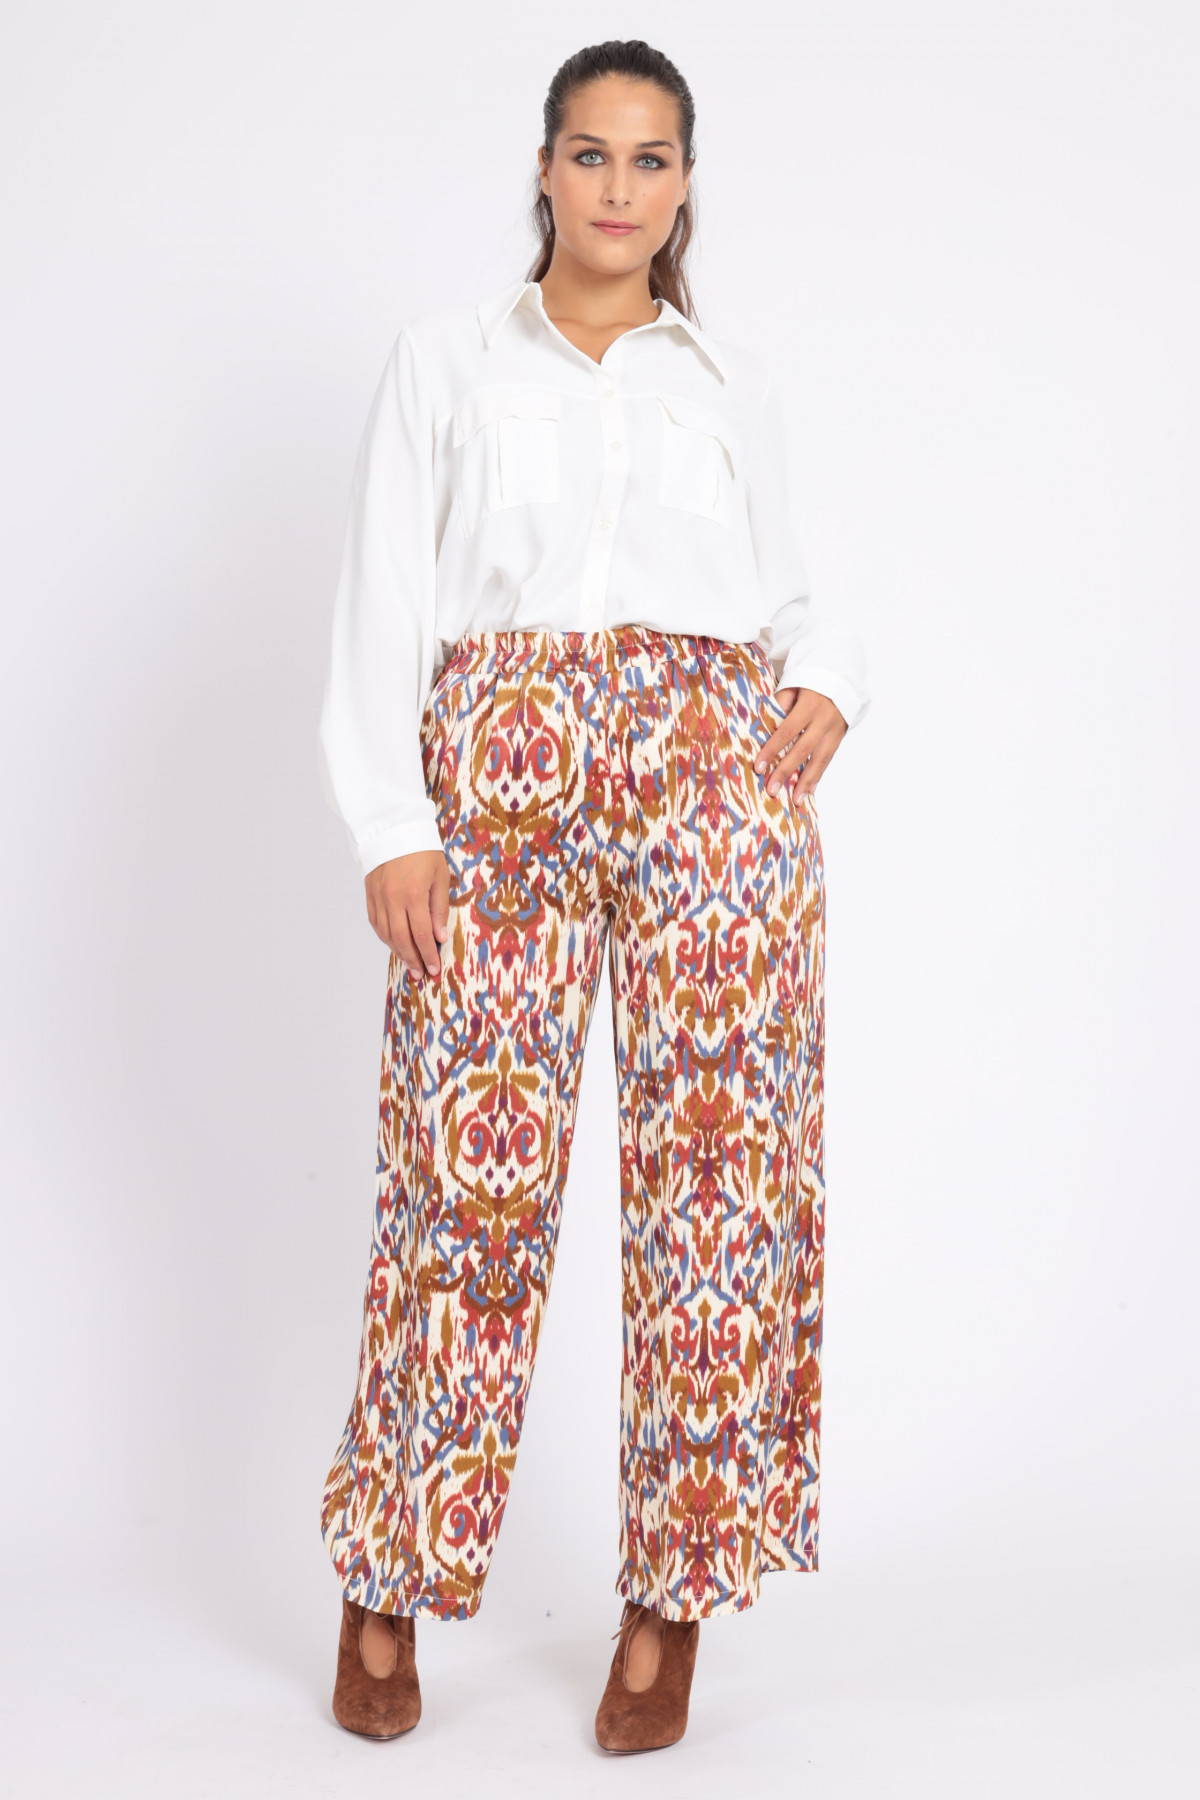 Palazzo Pants with Elasticated Waist in Multicolor Roschach Fantasy Print